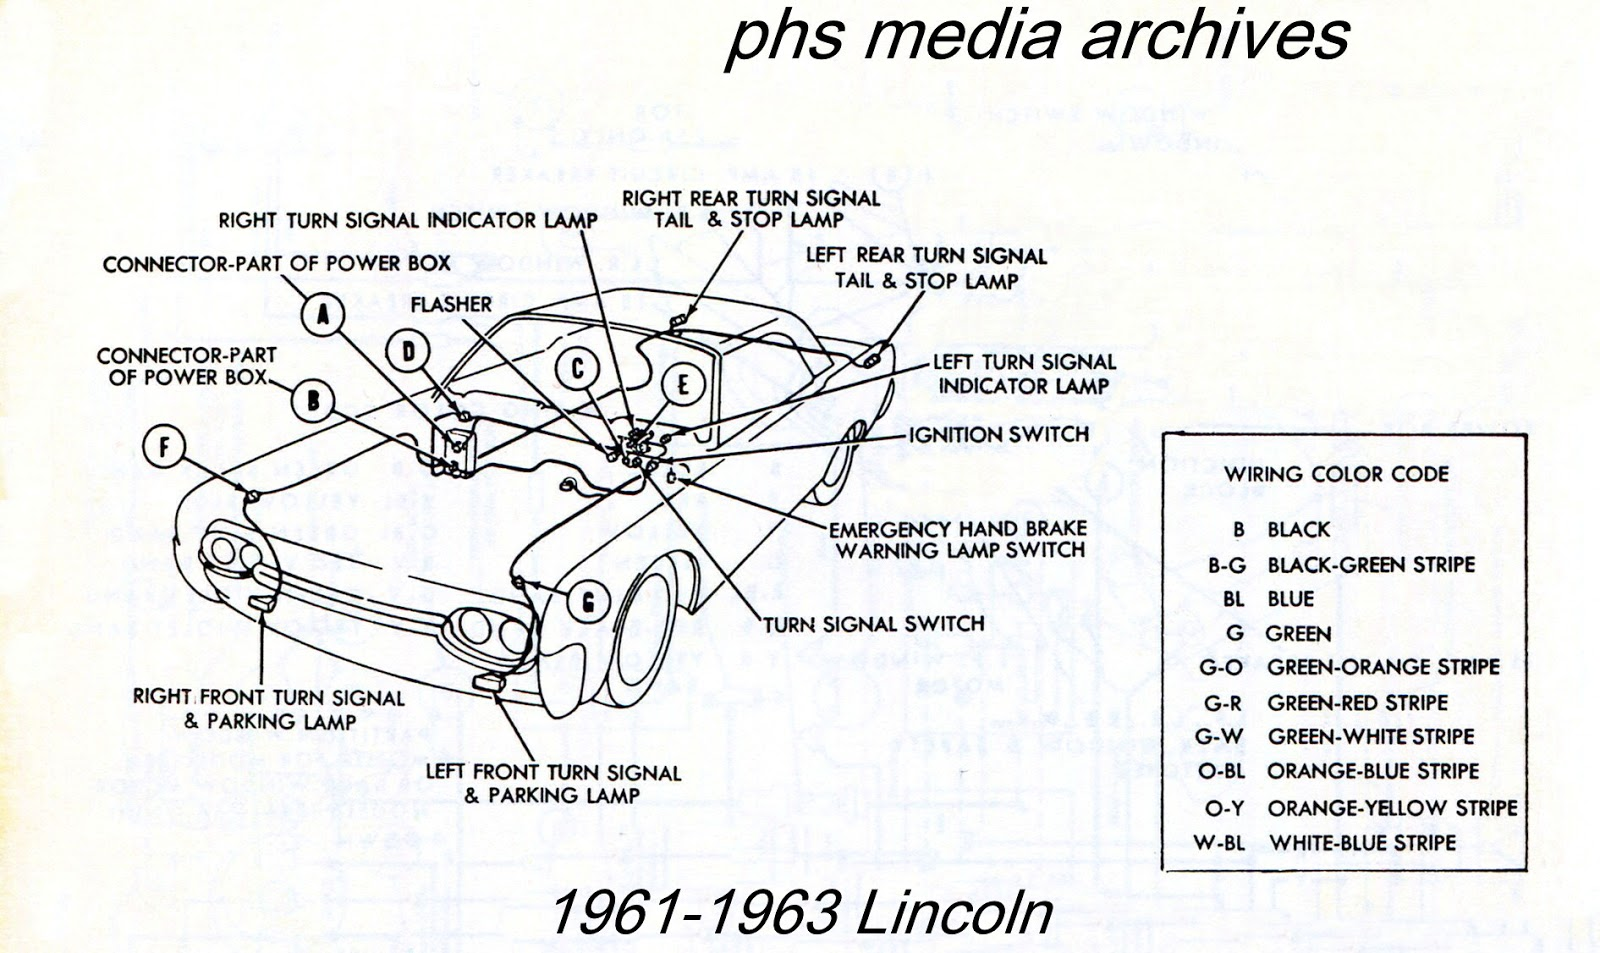 small resolution of tech series 1960 1964 lincoln wiring diagrams phscollectorcarworld rh phscollectorcarworld blogspot com 1998 lincoln navigator wiring diagram lincoln